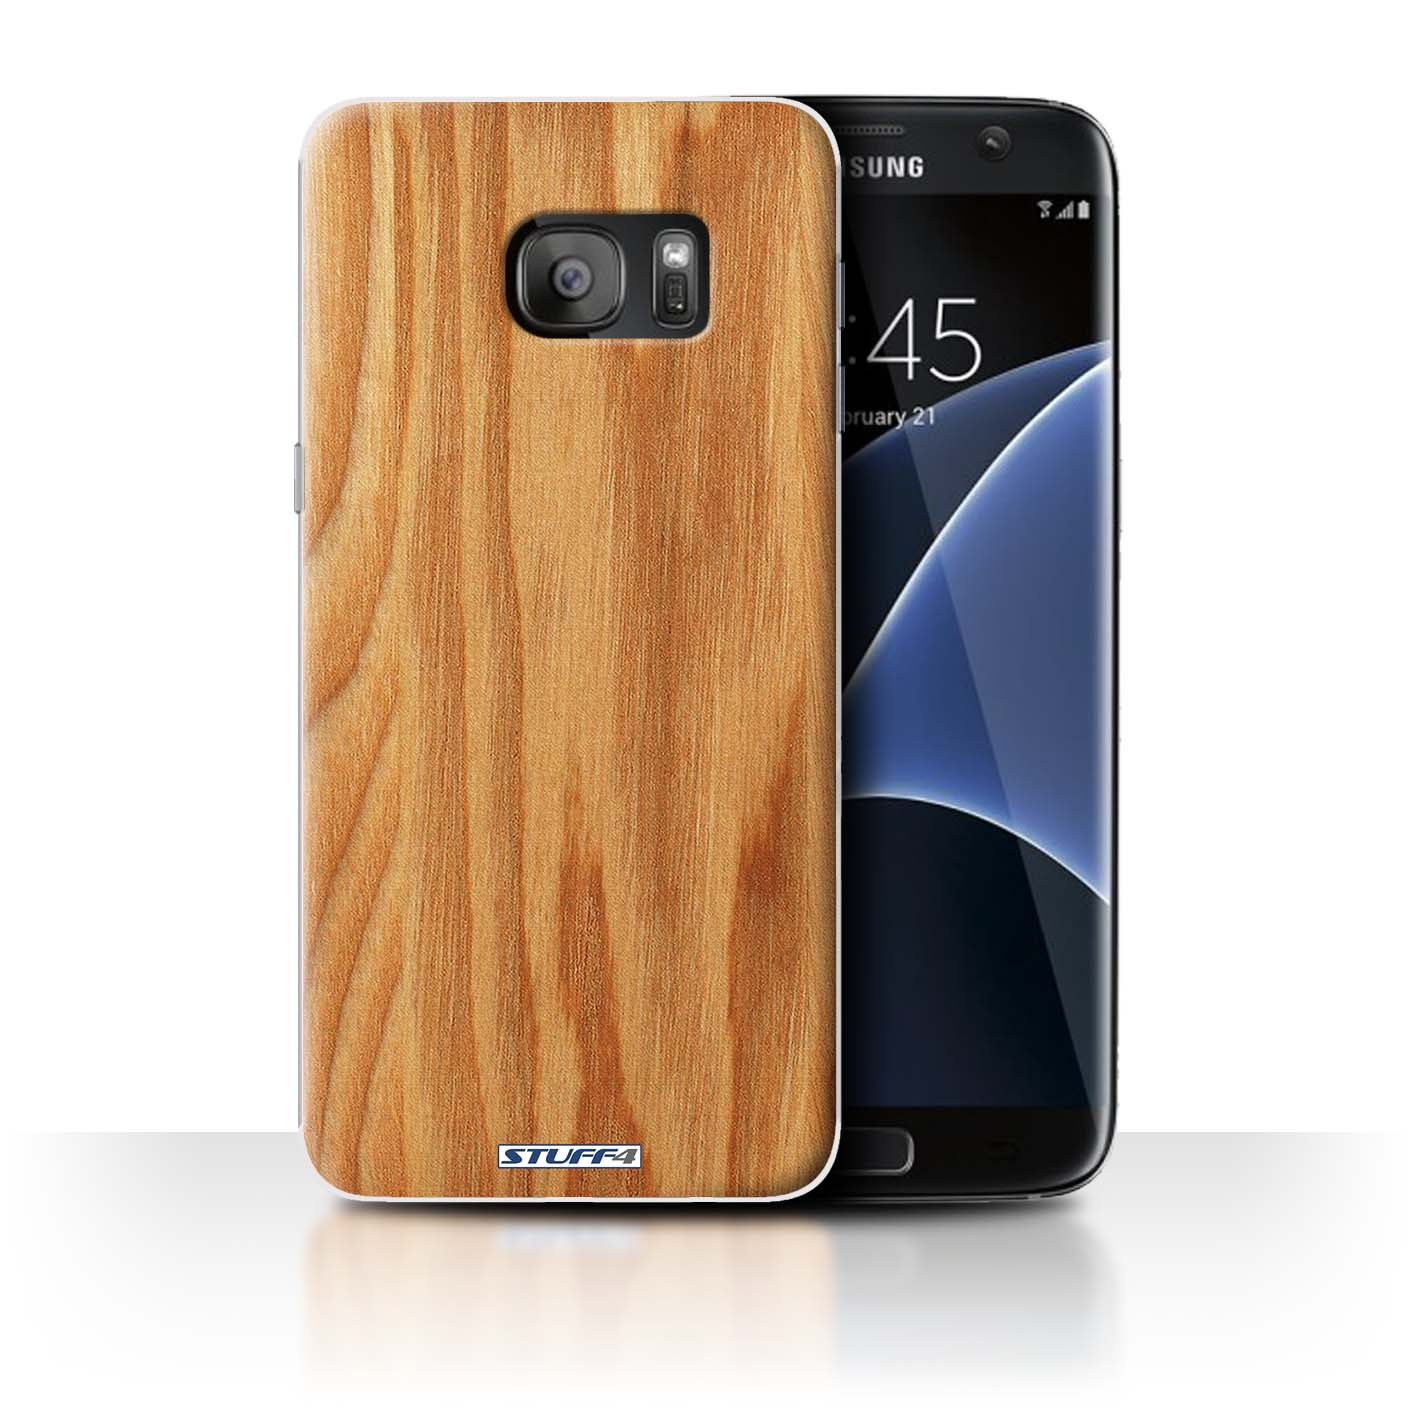 new product 0227a 34c60 Protective Hard Back Case for Samsung Galaxy S7 Edge/G935 / Wood Grain  Effect/Pattern Collection / Oak